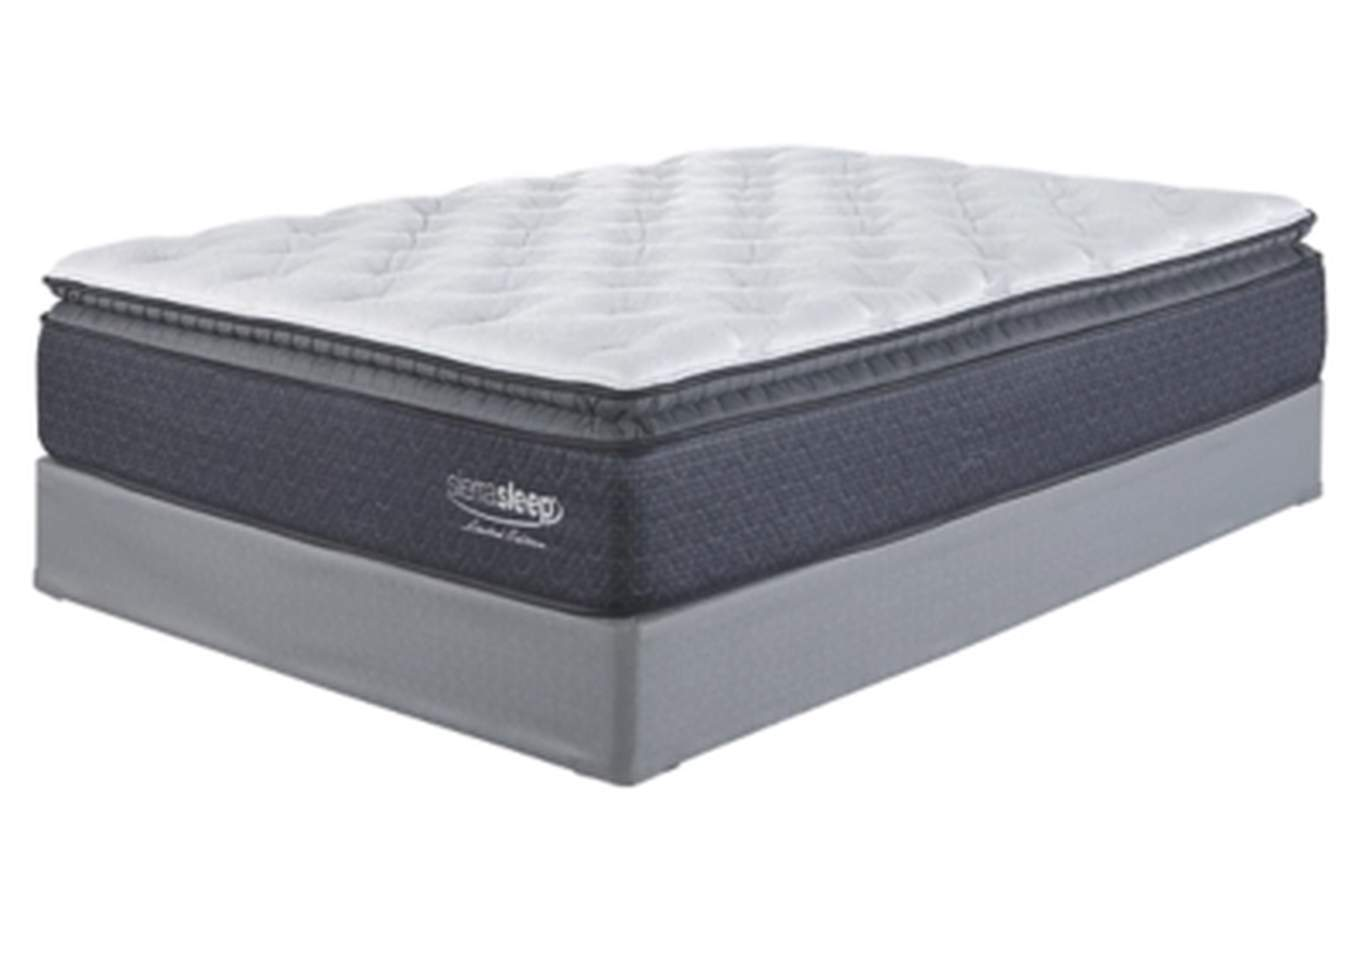 Limited Edition Pillowtop White King Mattress,Sierra Sleep by Ashley